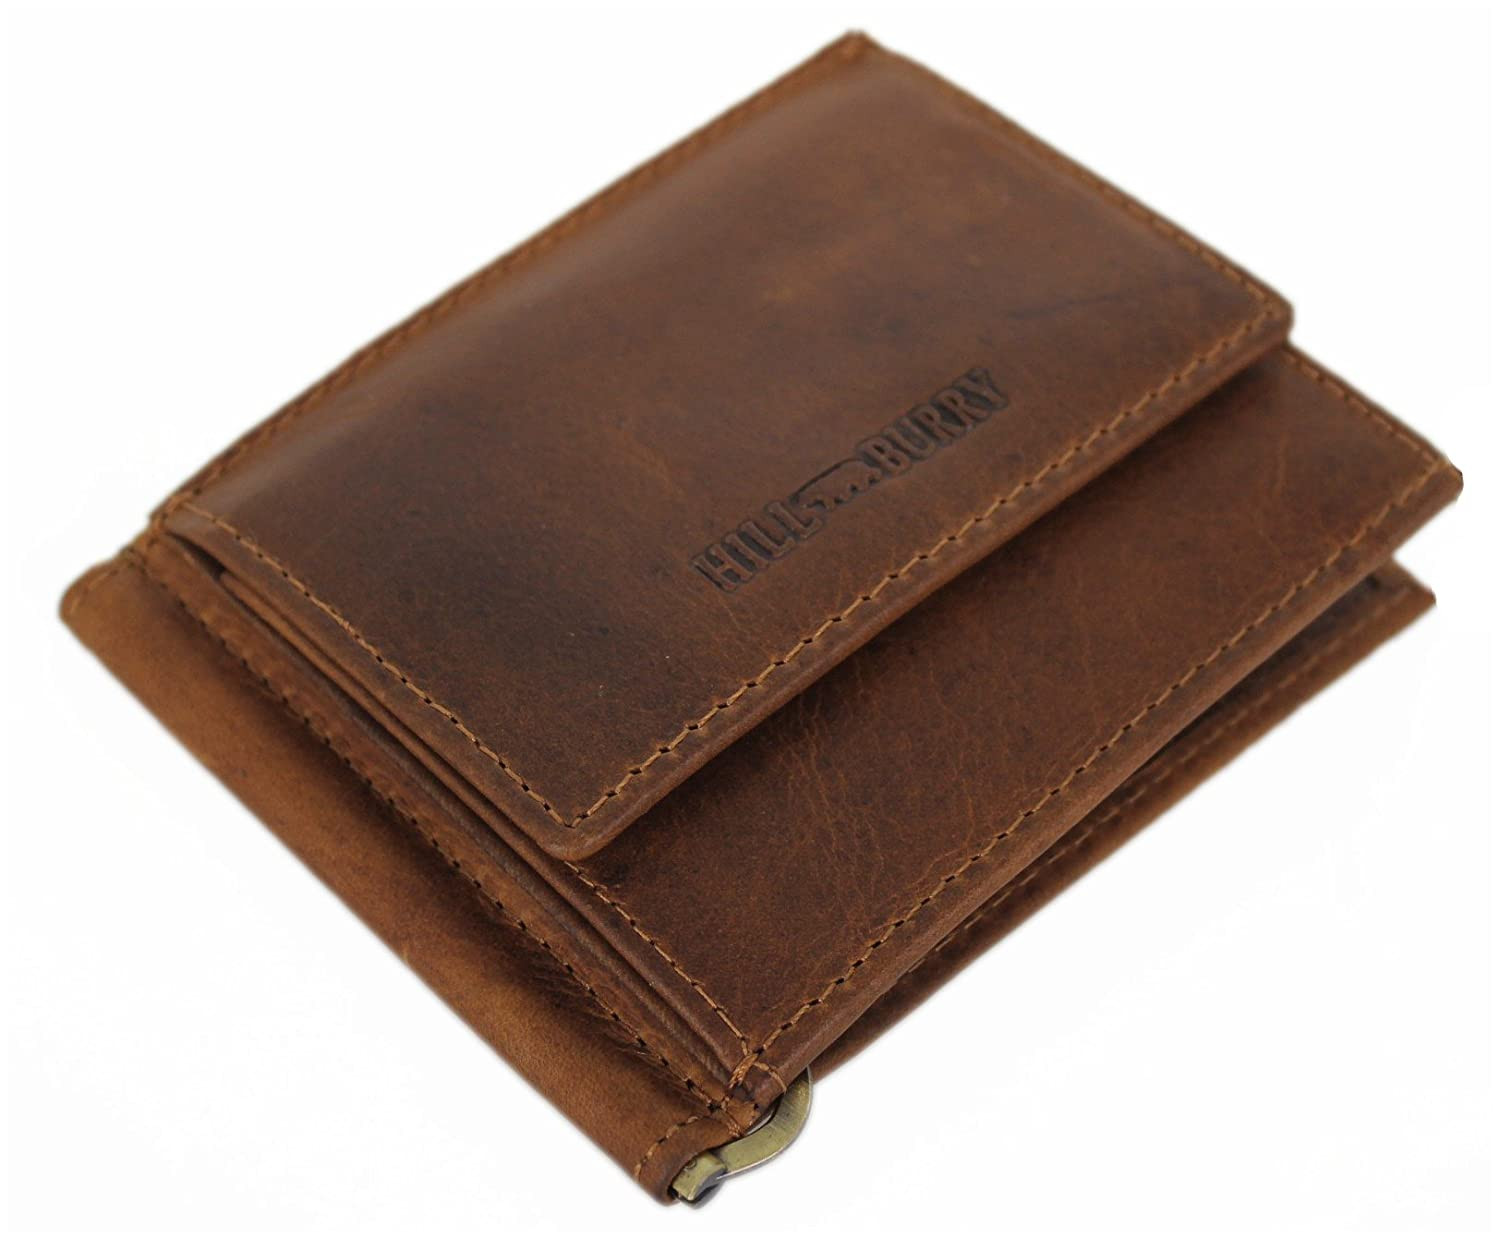 Hill Burry Wallet For Men Money Clip Bifold ID Card Holder Case Genuine Leather Handmade Vintage With Coin Pocket Zipper Monaco